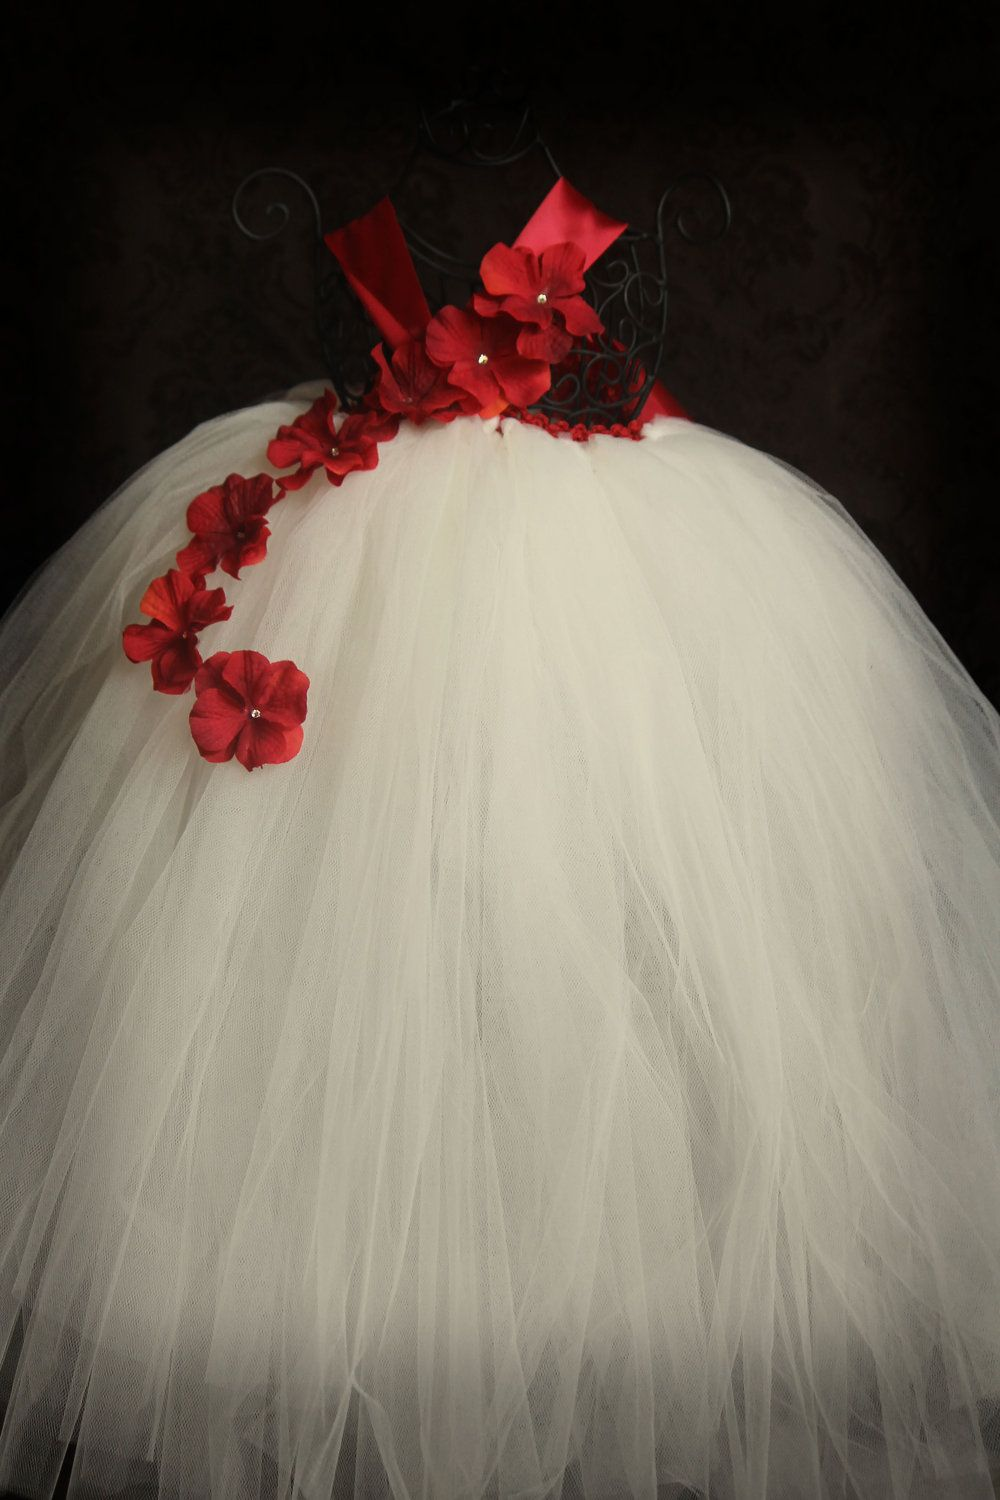 25065c4dd0 Christmas Tutu halter dress red and ivory sizes 6months-3t other colors  available.  55.00